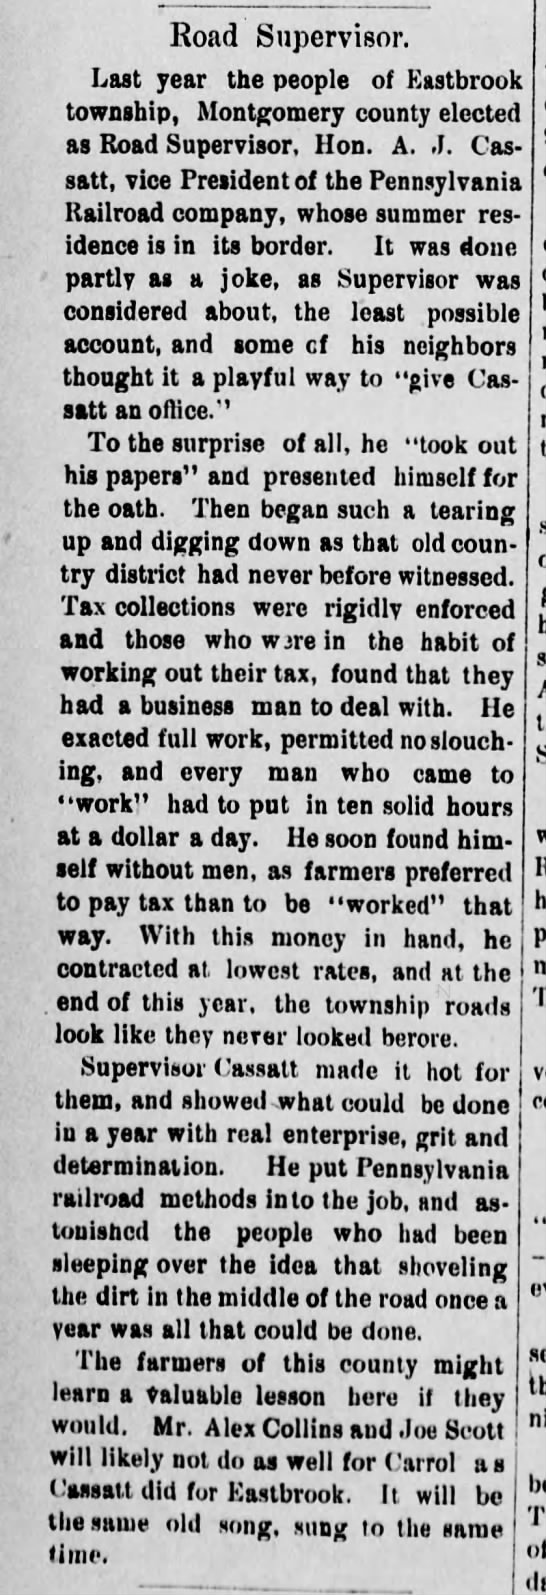 Alex Collins, The Daily Republican 27 Feb 1884